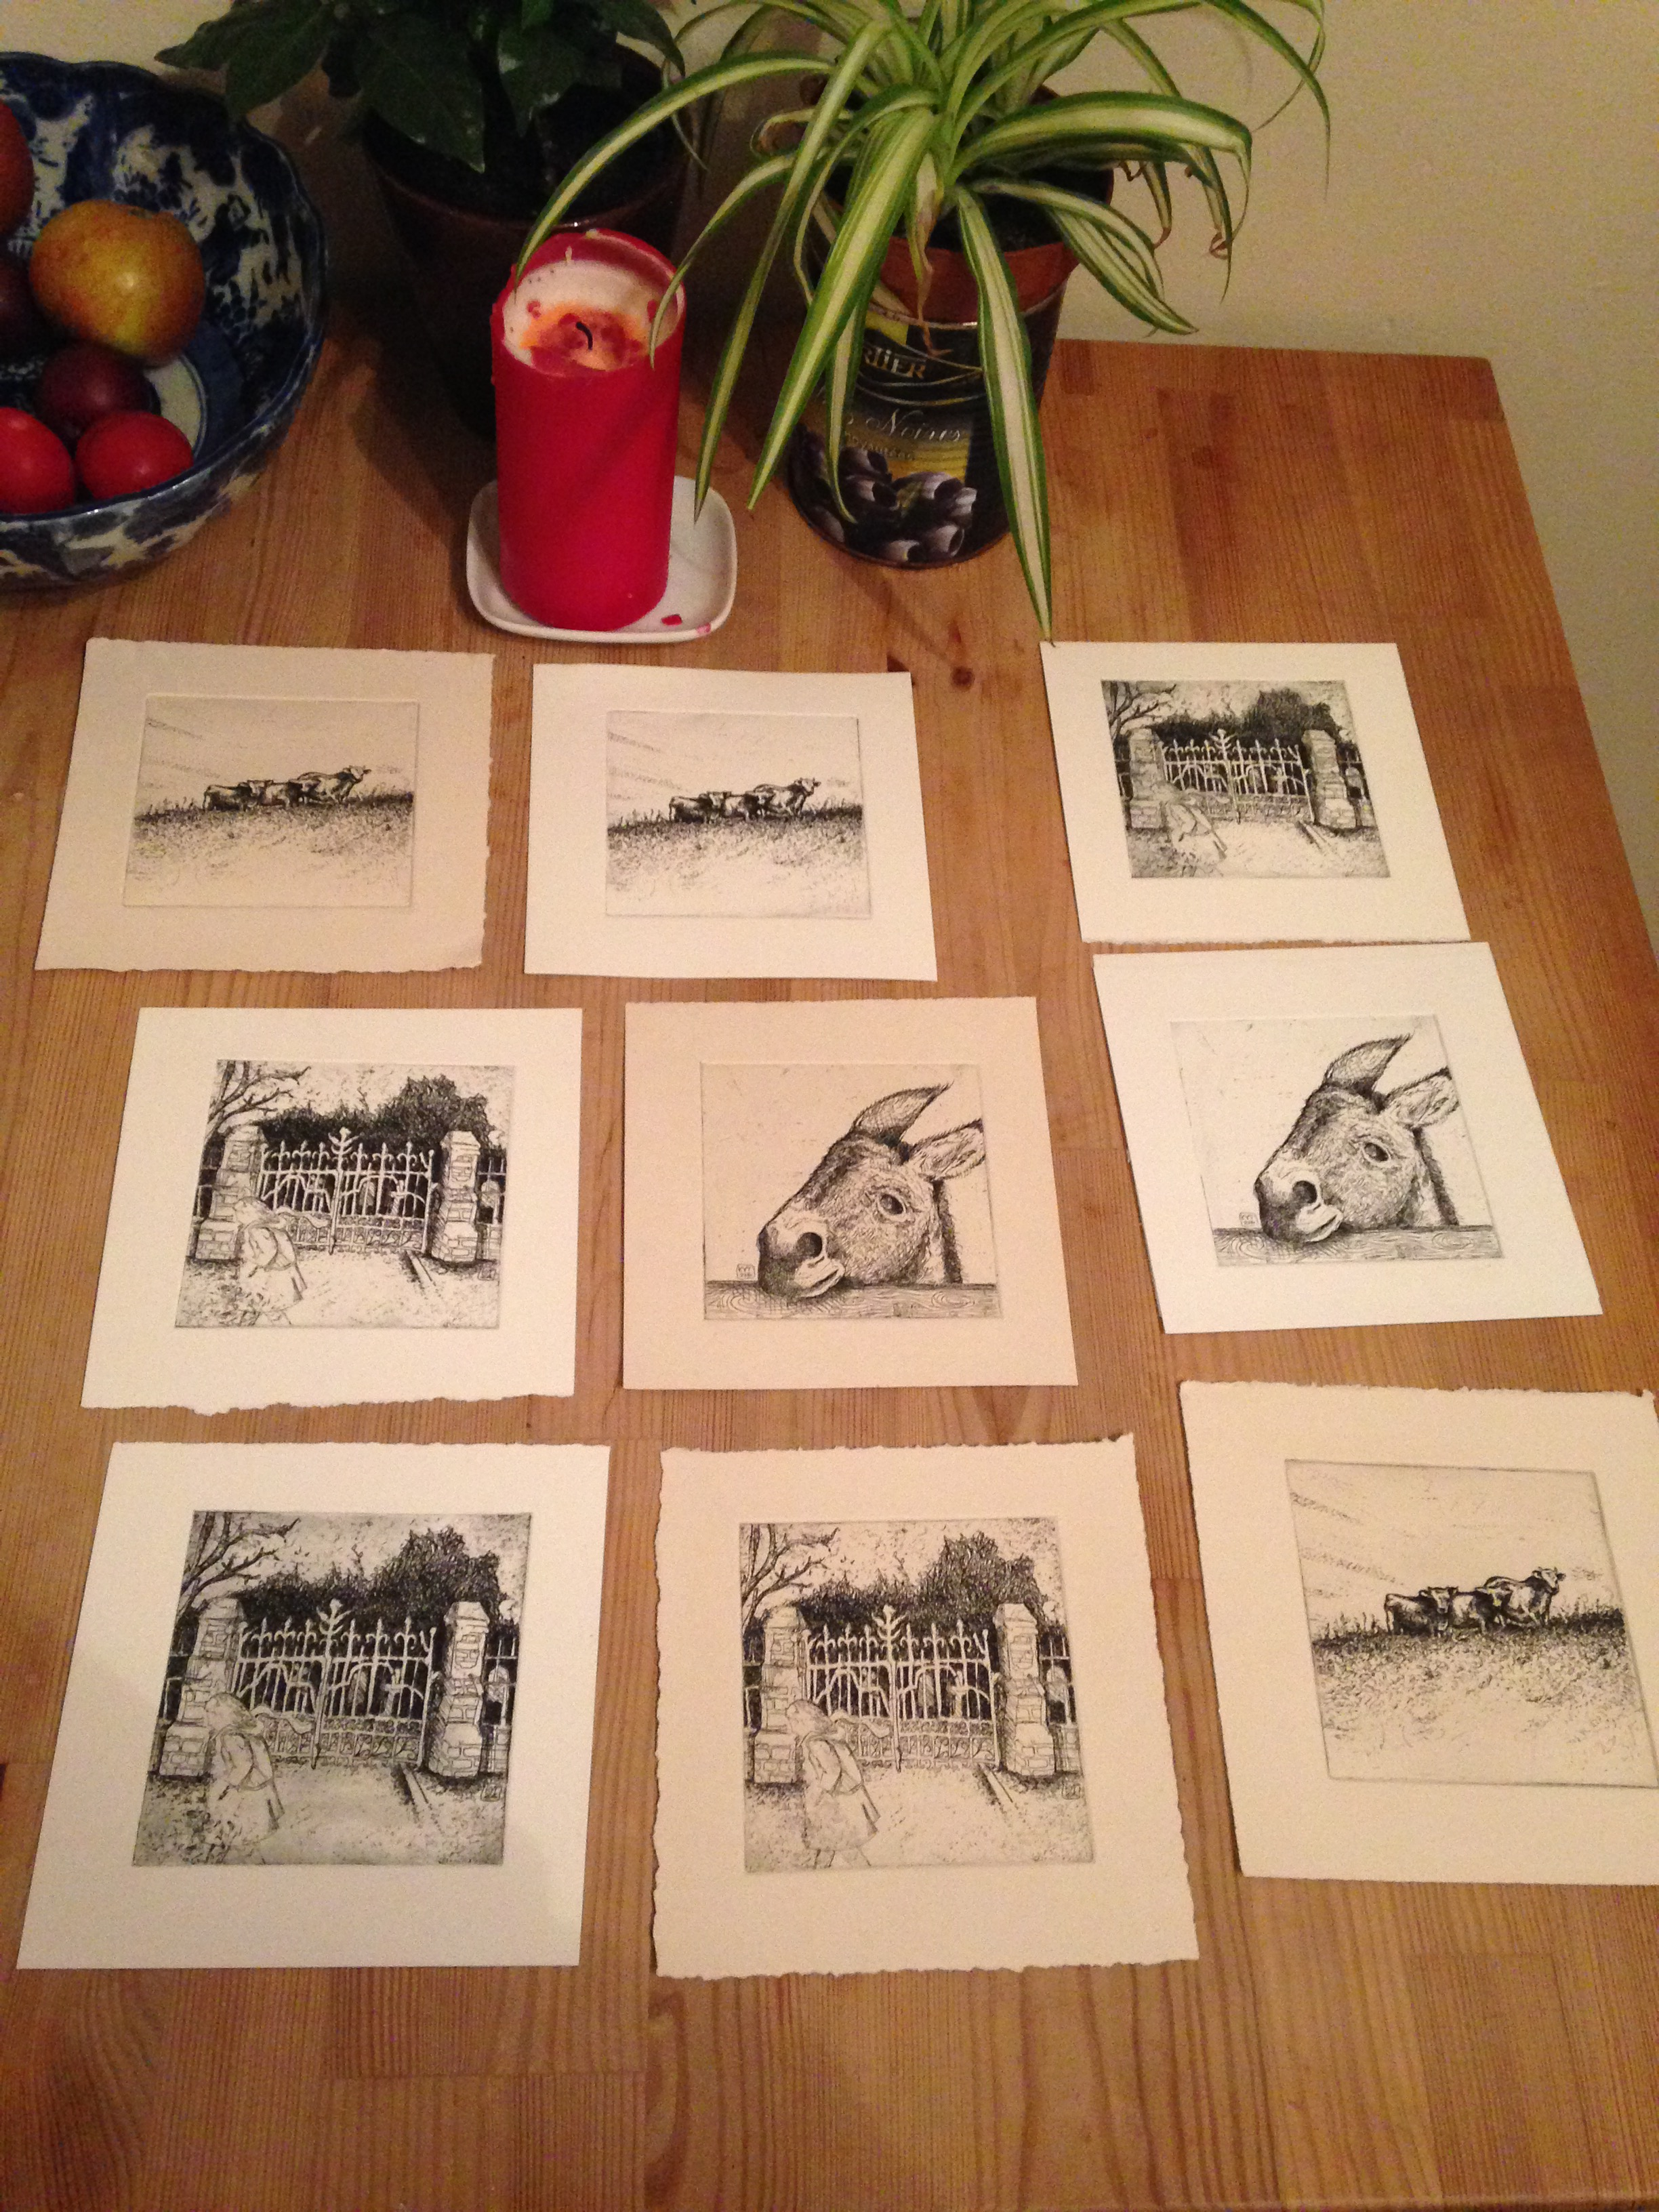 Finished etchings